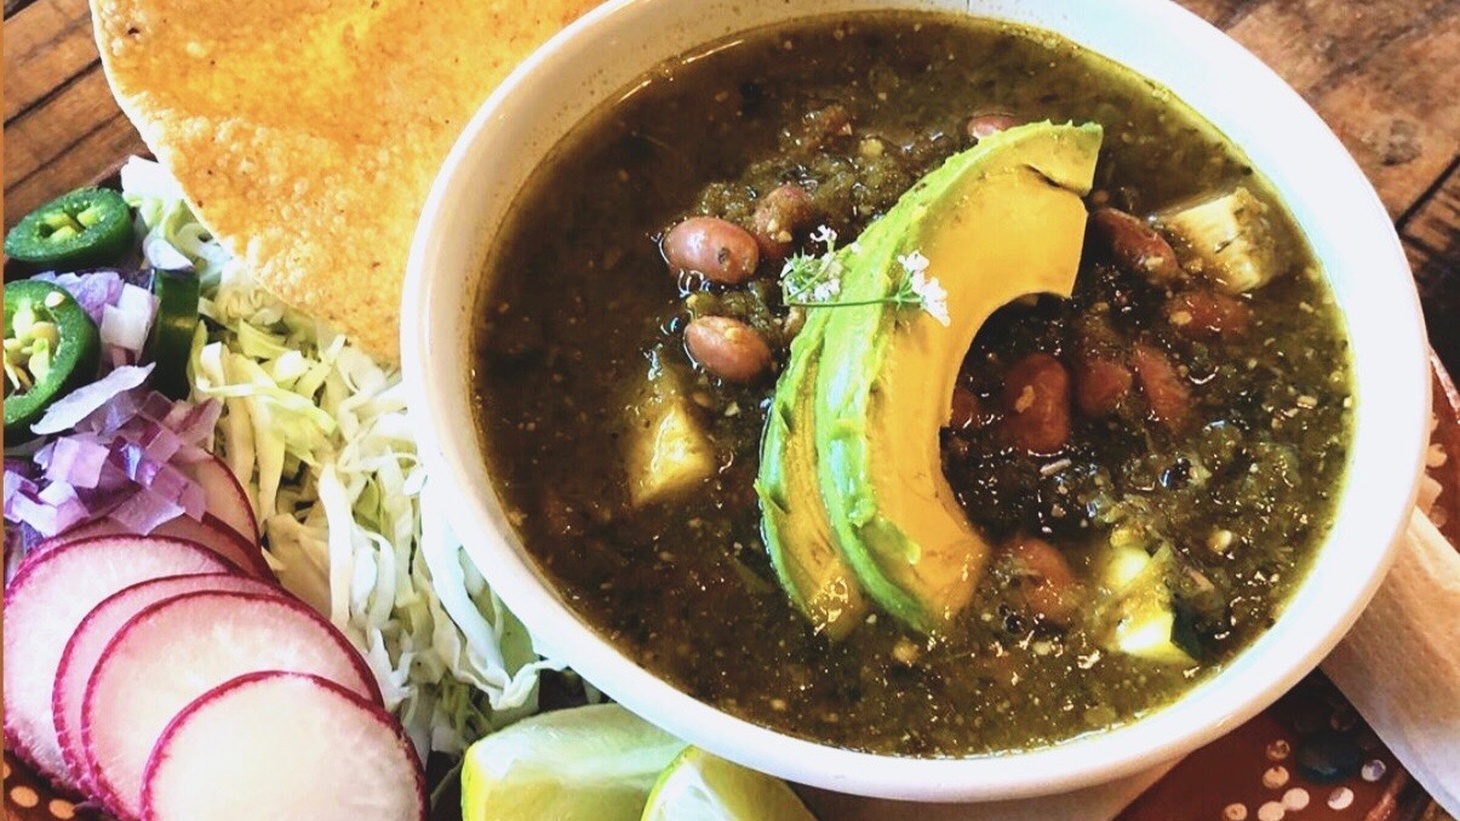 Alta Baja Market offers meal kits for making their pozole at home.